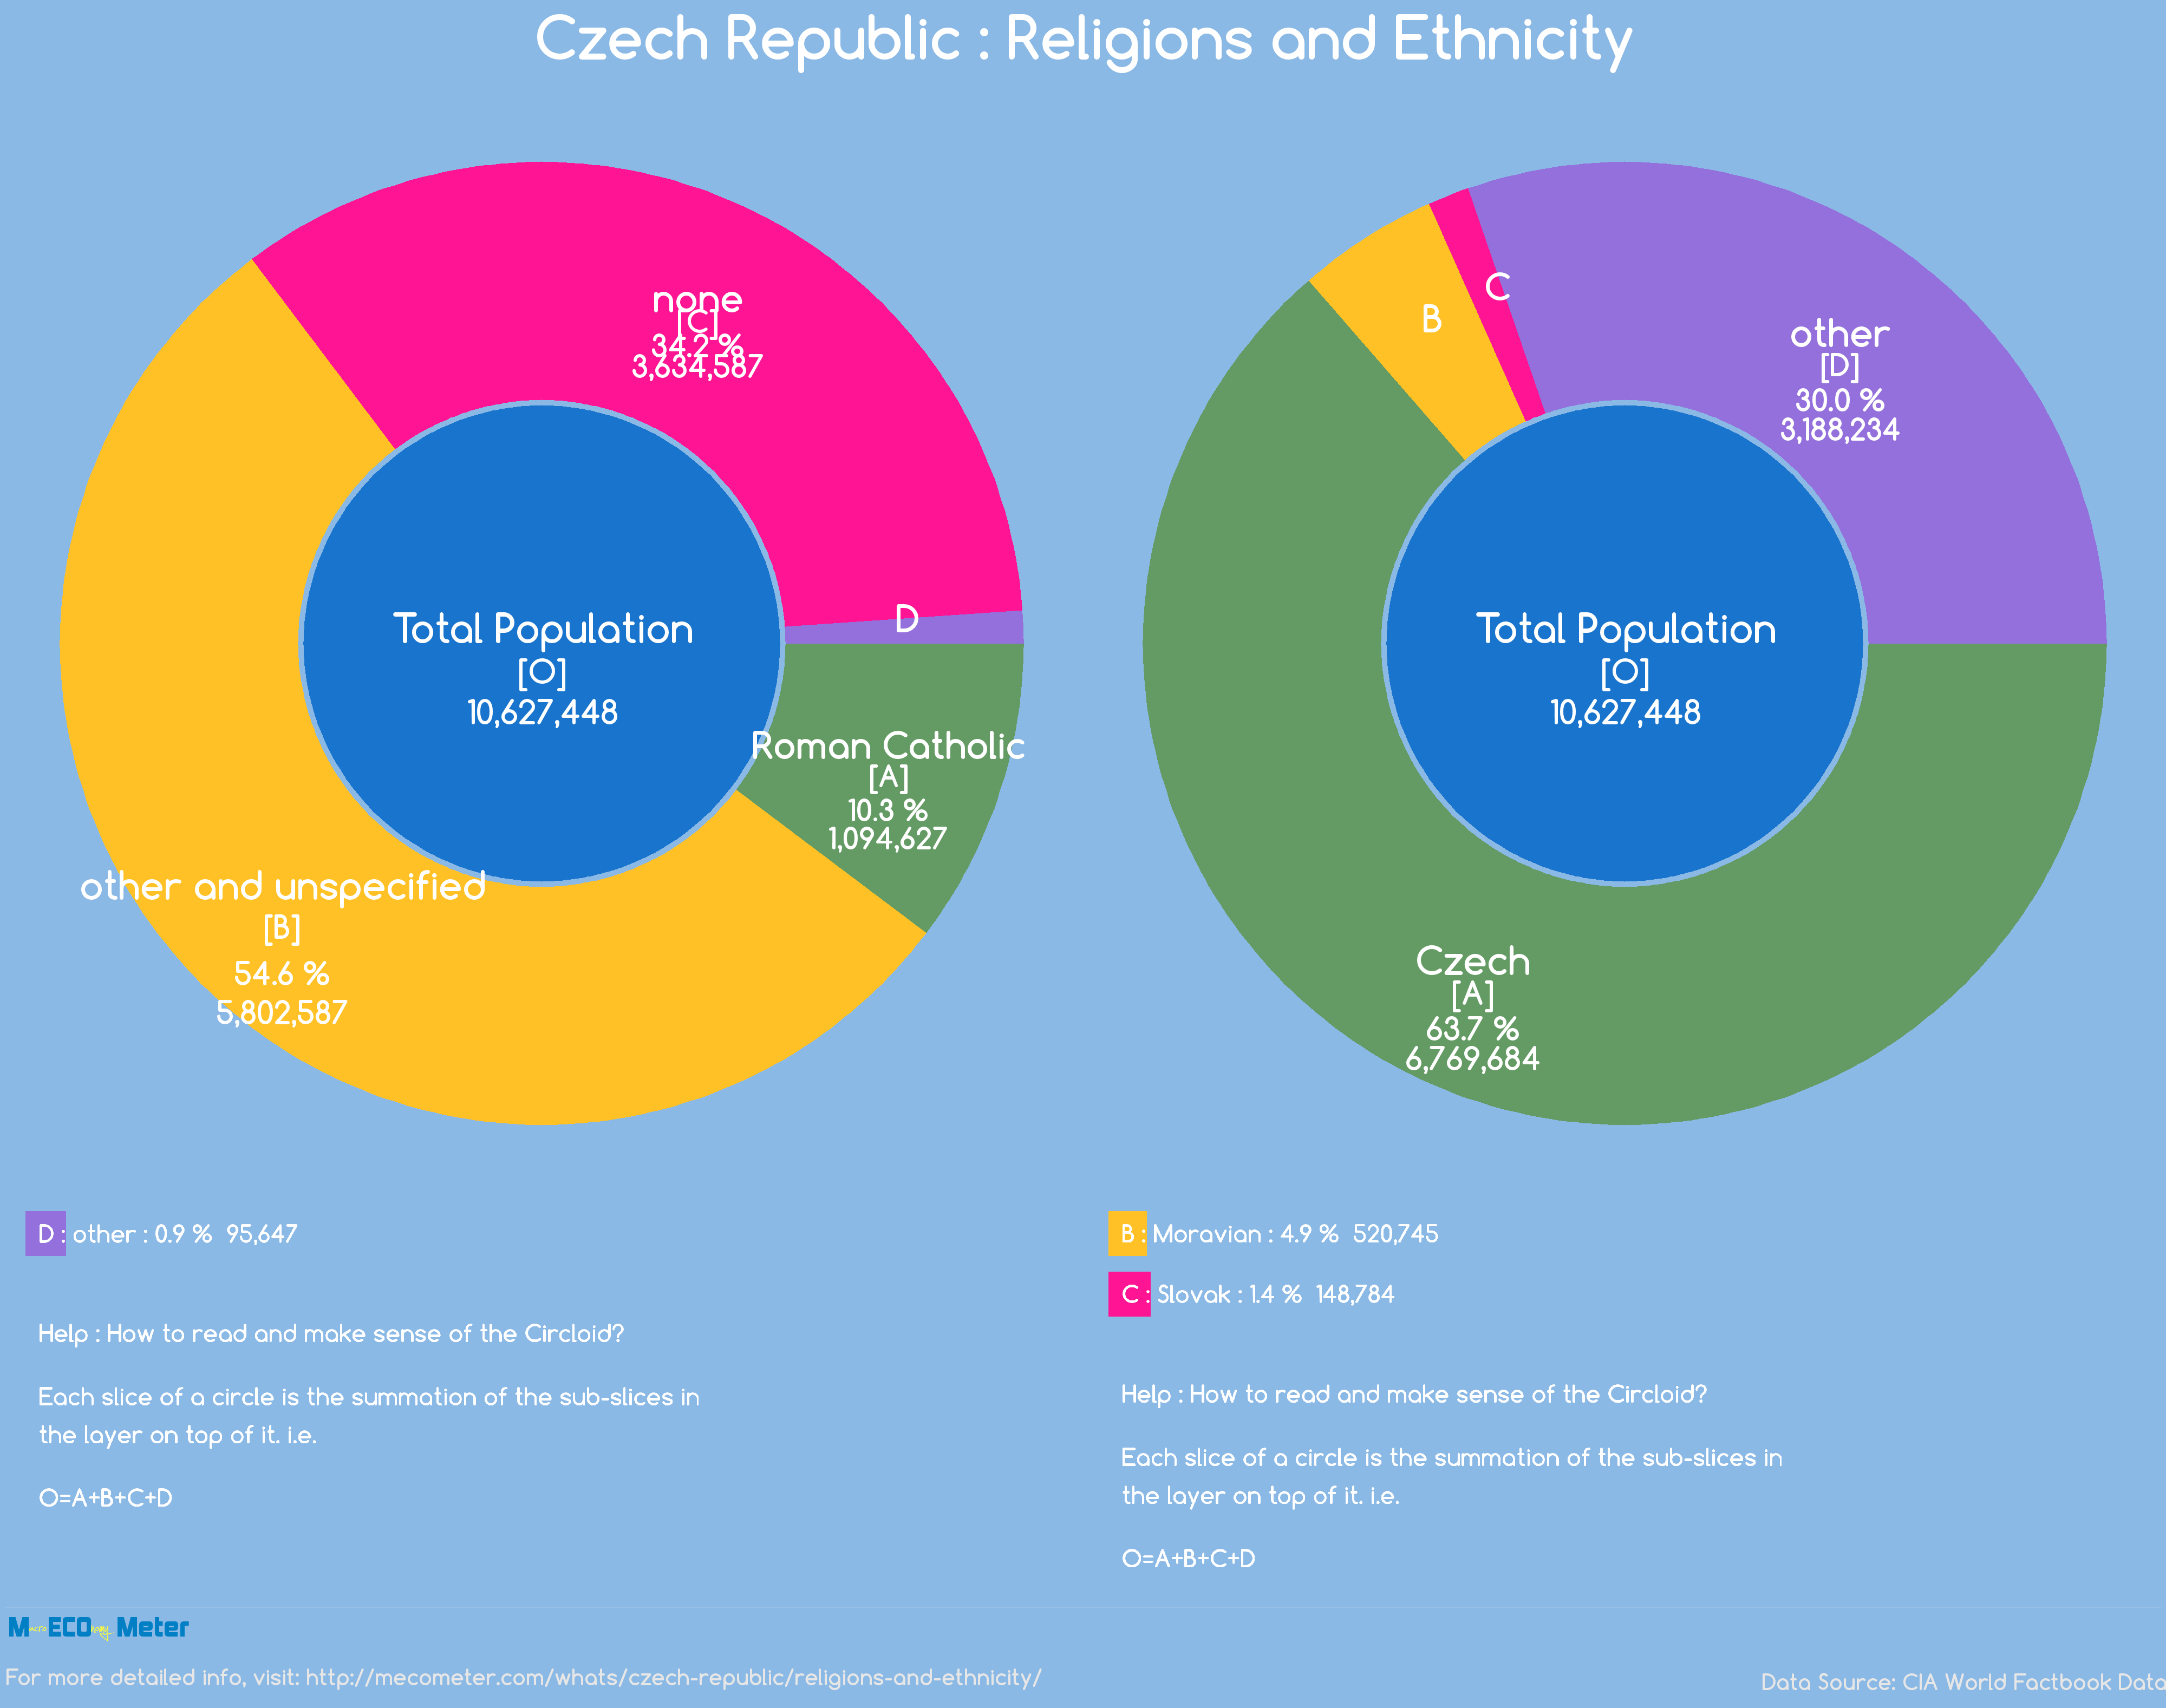 Czech Republic : Religions and Ethnicity